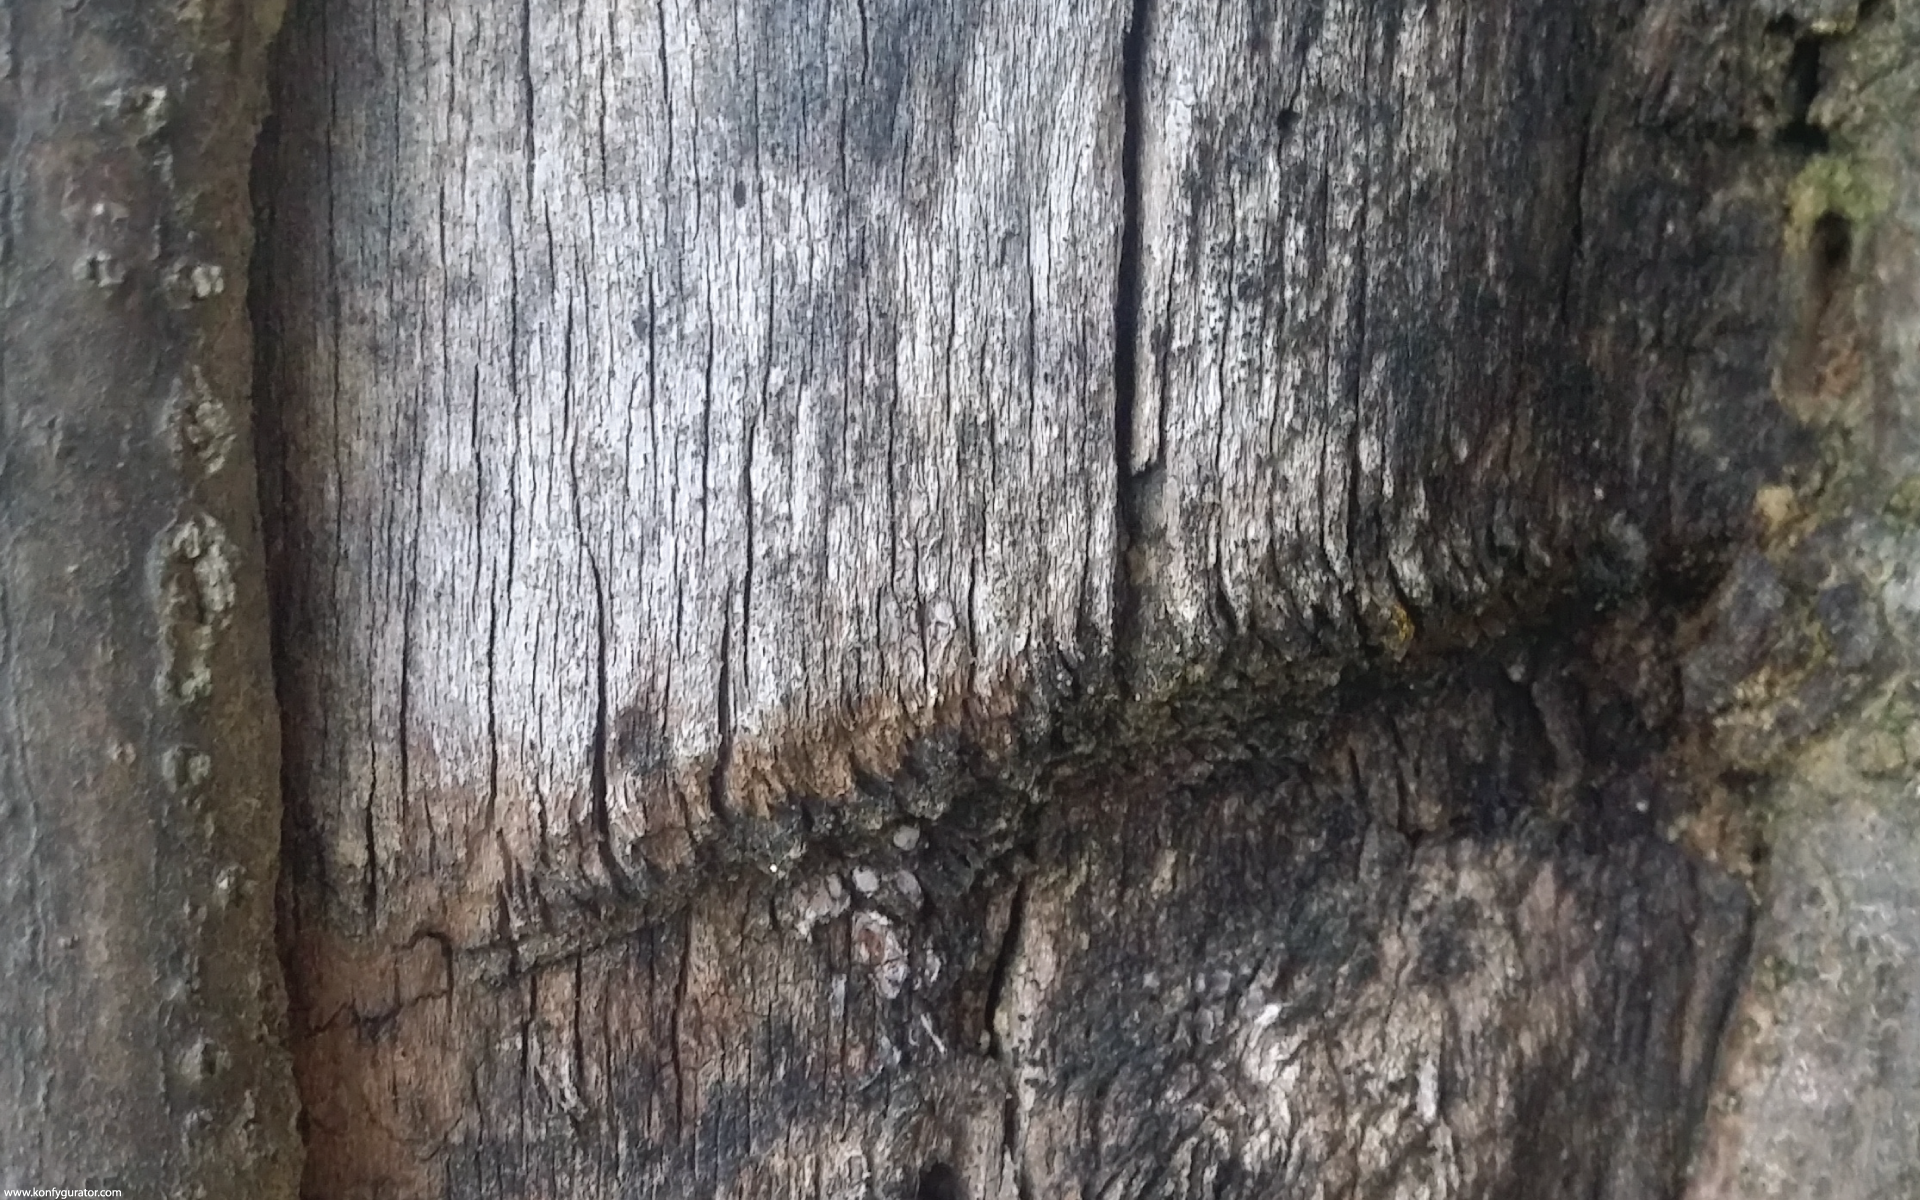 HD Wallpapers - Textures - bark, wood, old